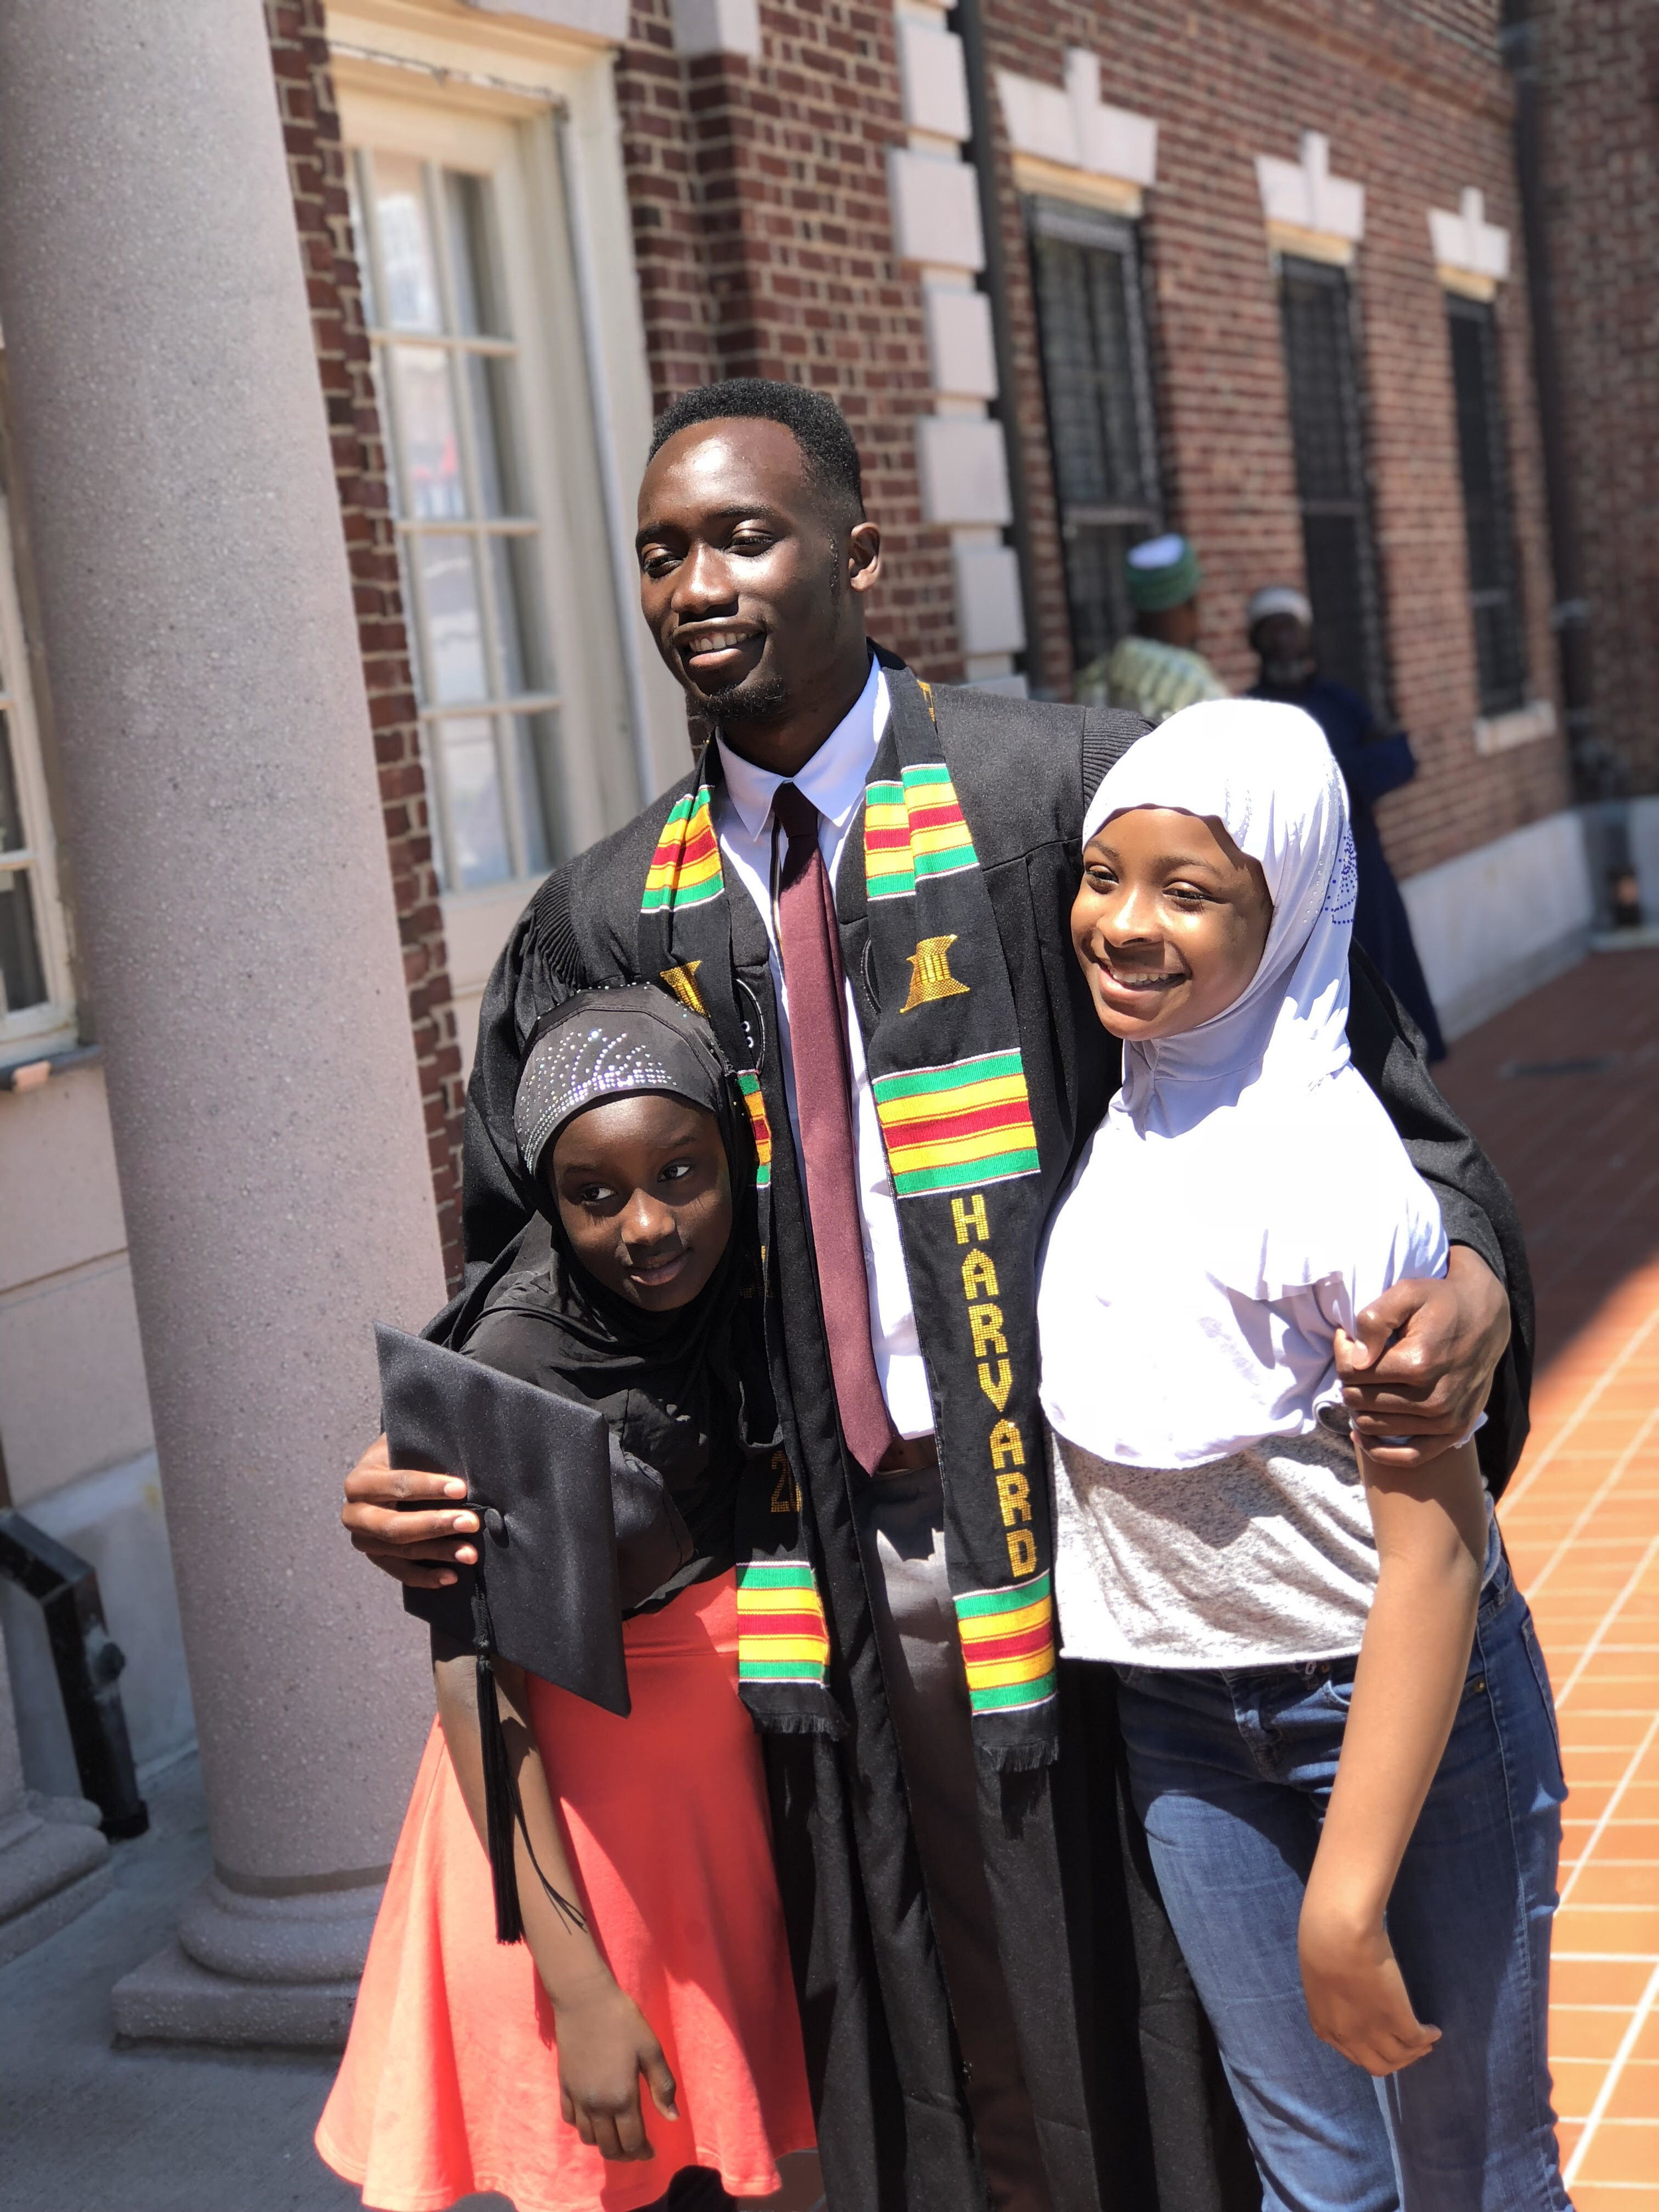 Nuha with his younger sisters at Harvard's commencement.